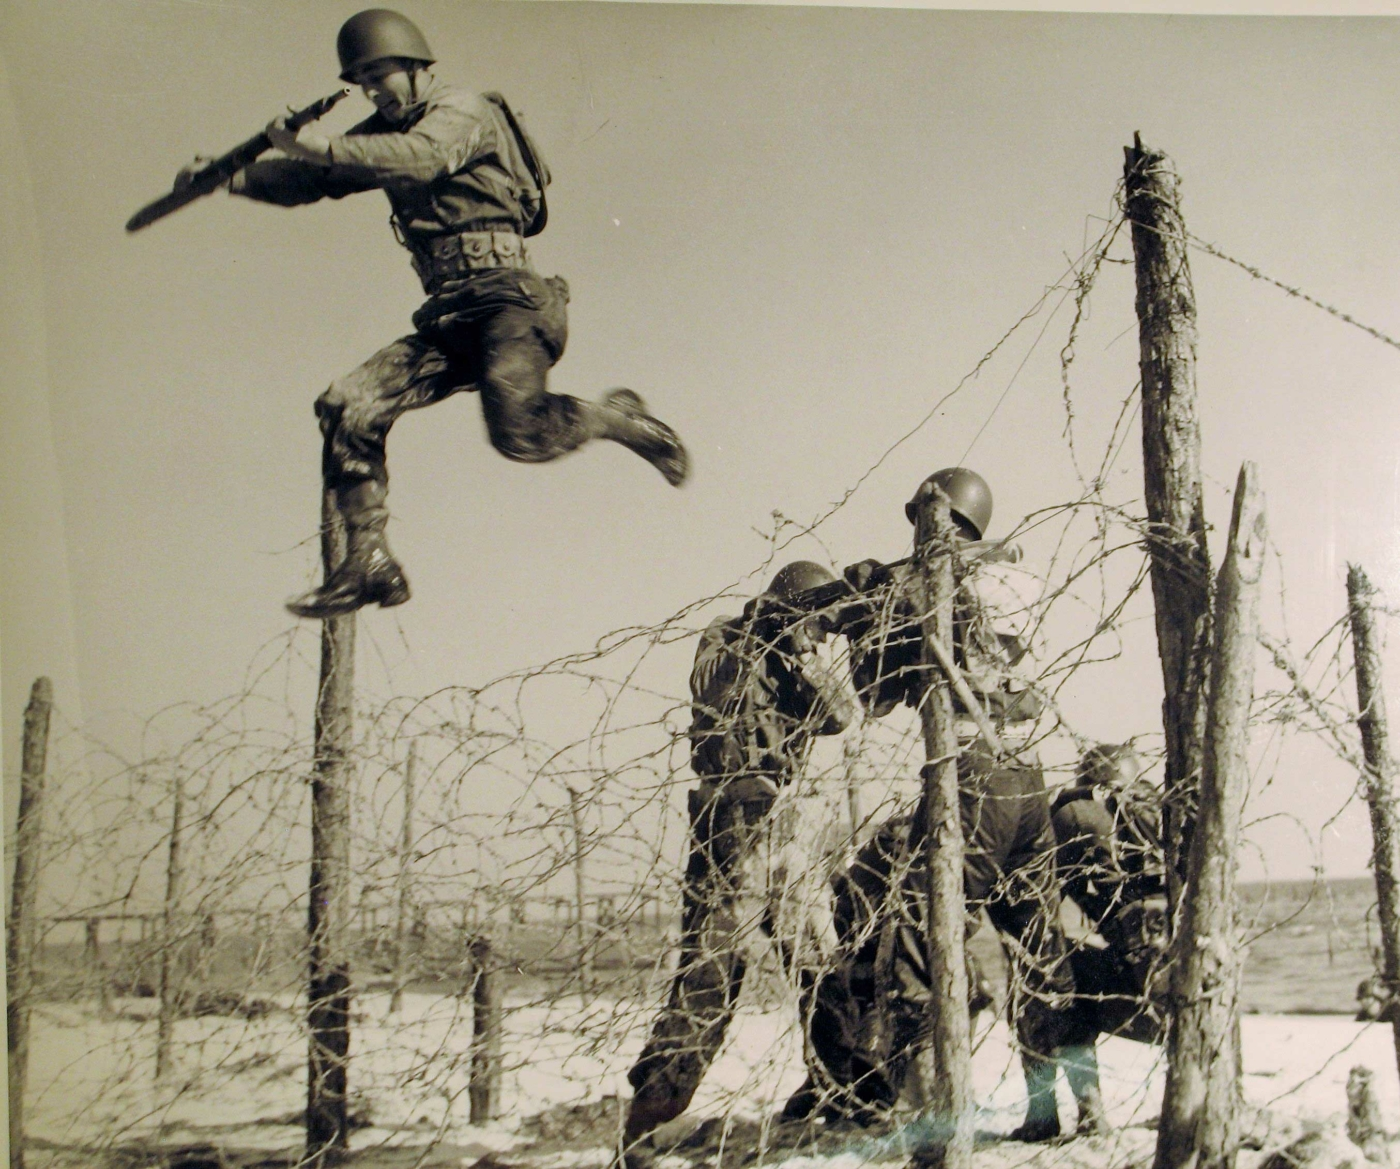 Image of old war photo of military men jumping barbwire in Camp Gordon Johnston.